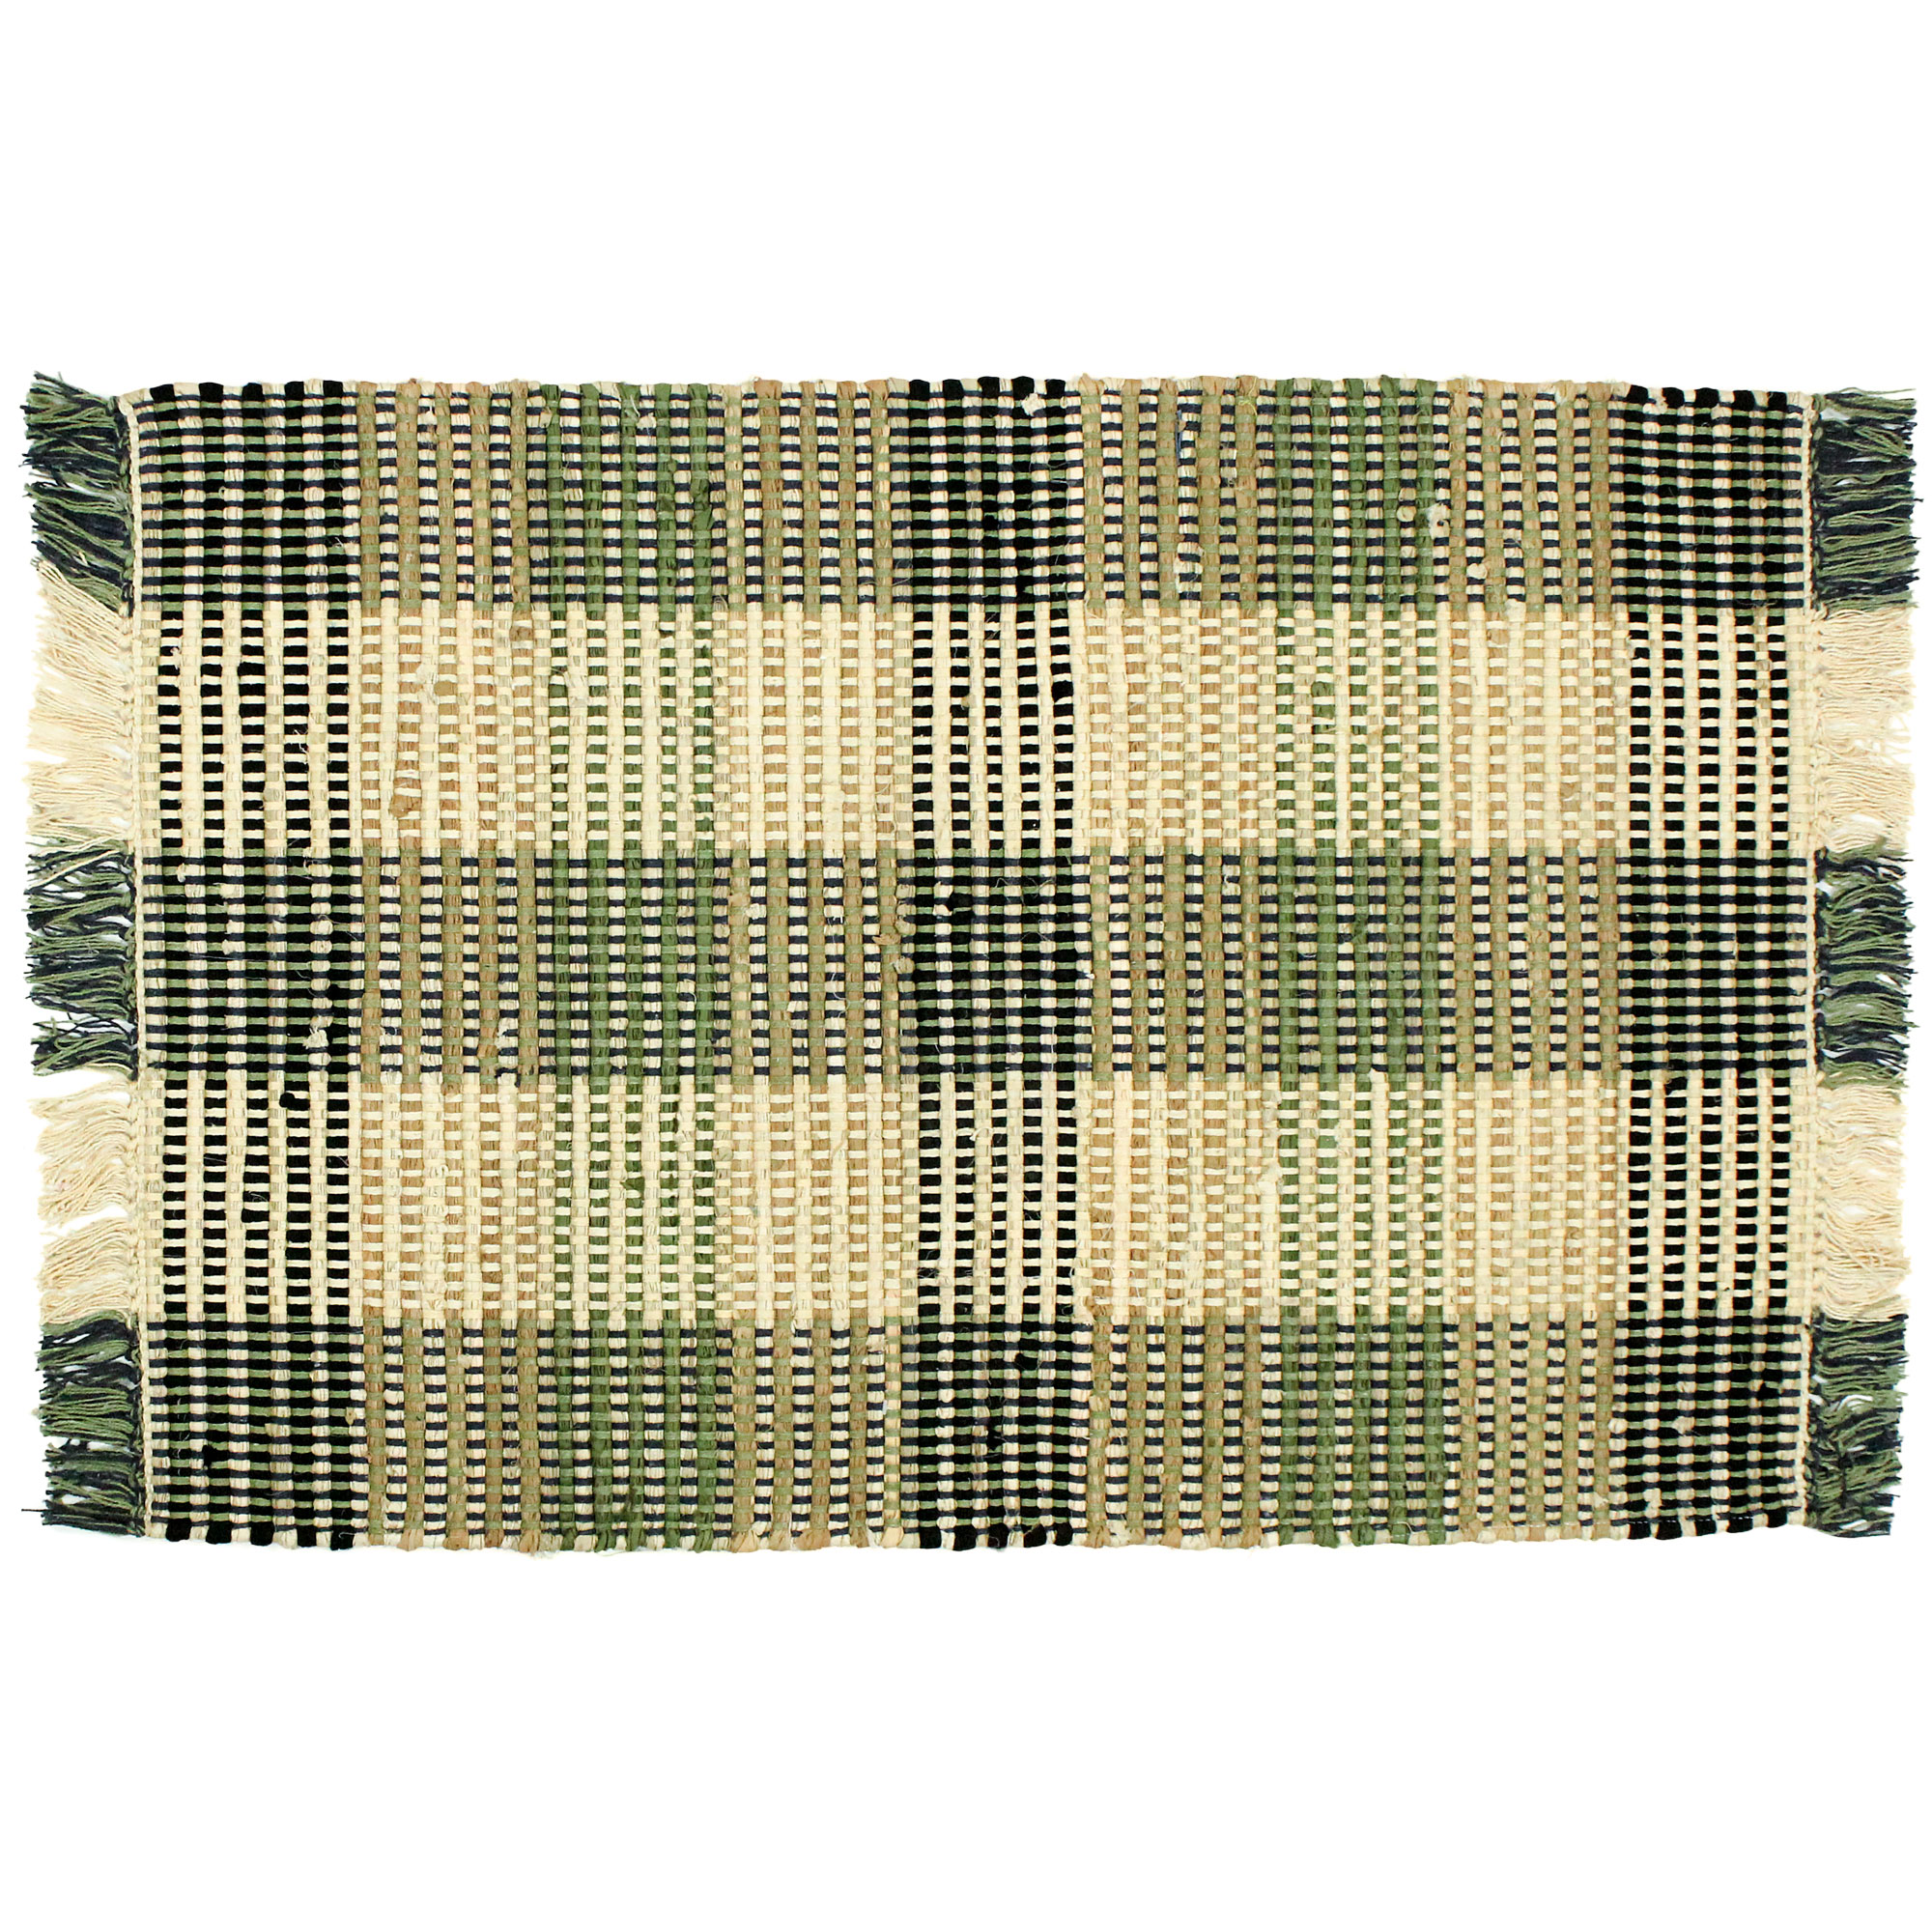 Plaid Rug: Booker Plaid Cotton Area Rag Rugs 2 X 3 Bathroom Kitchen Entry